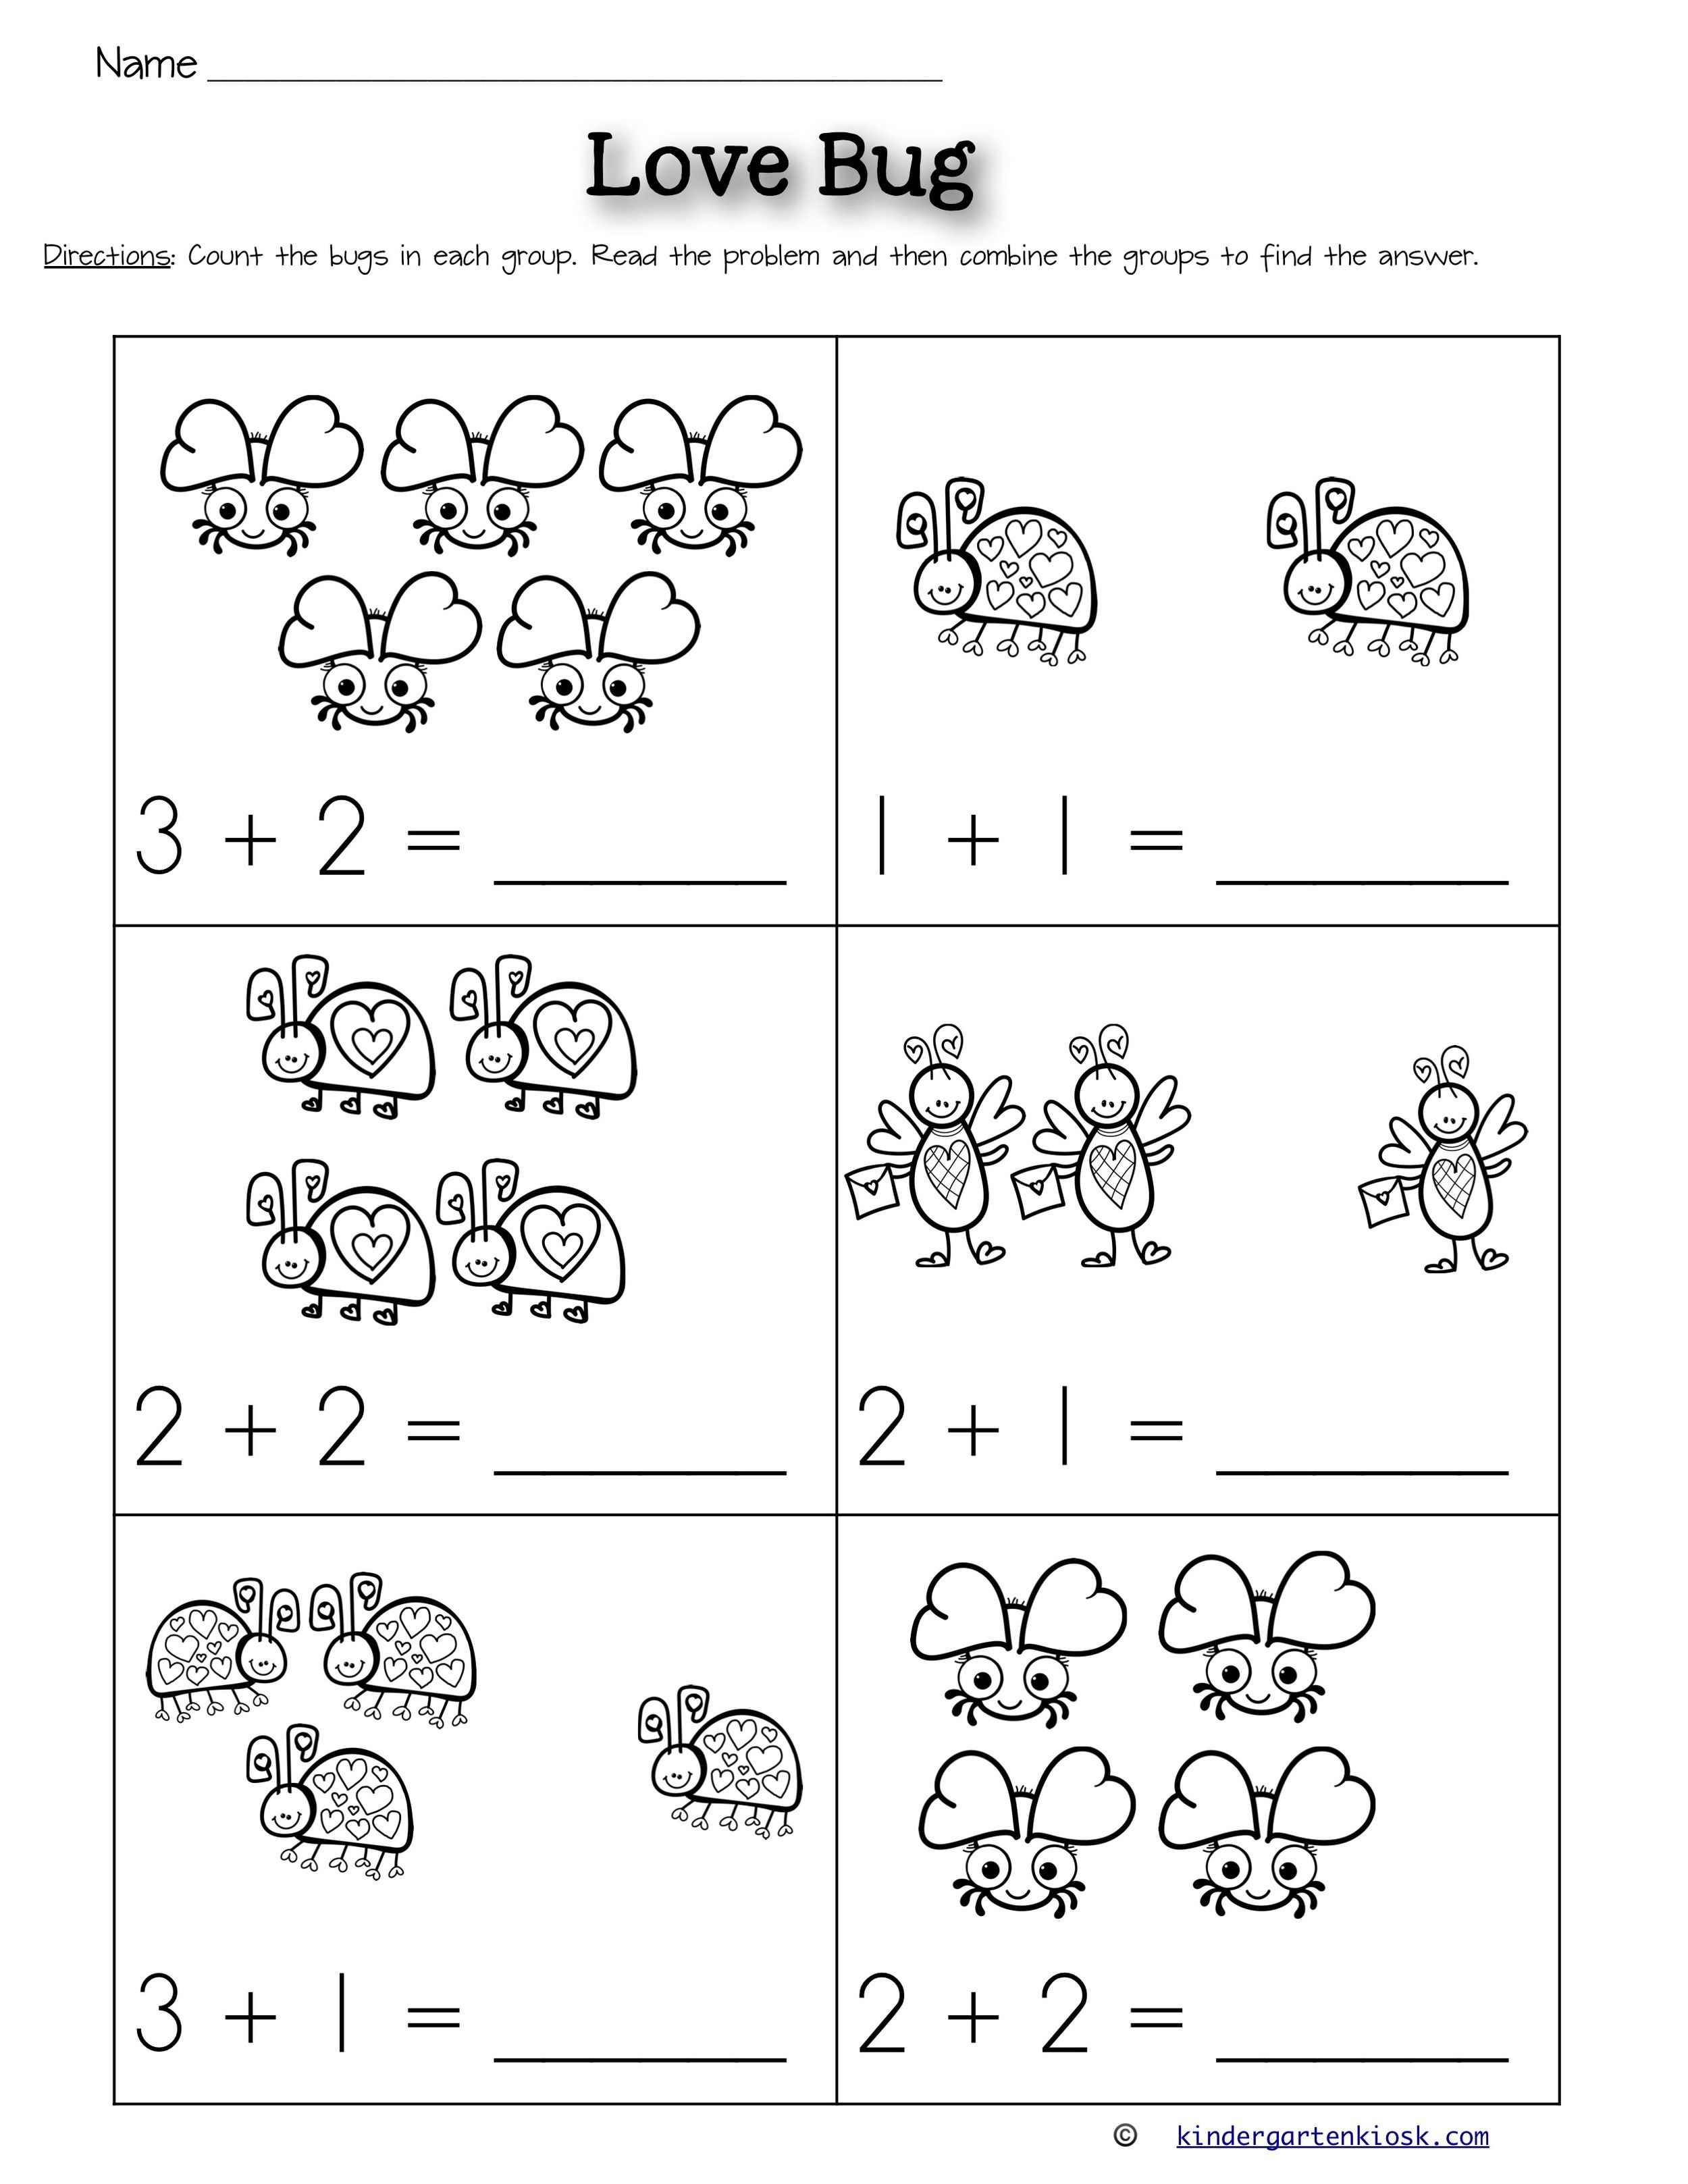 medium resolution of Addition 0-5 Worksheets: February — Kindergarten Kiosk   Kindergarten math worksheets  addition